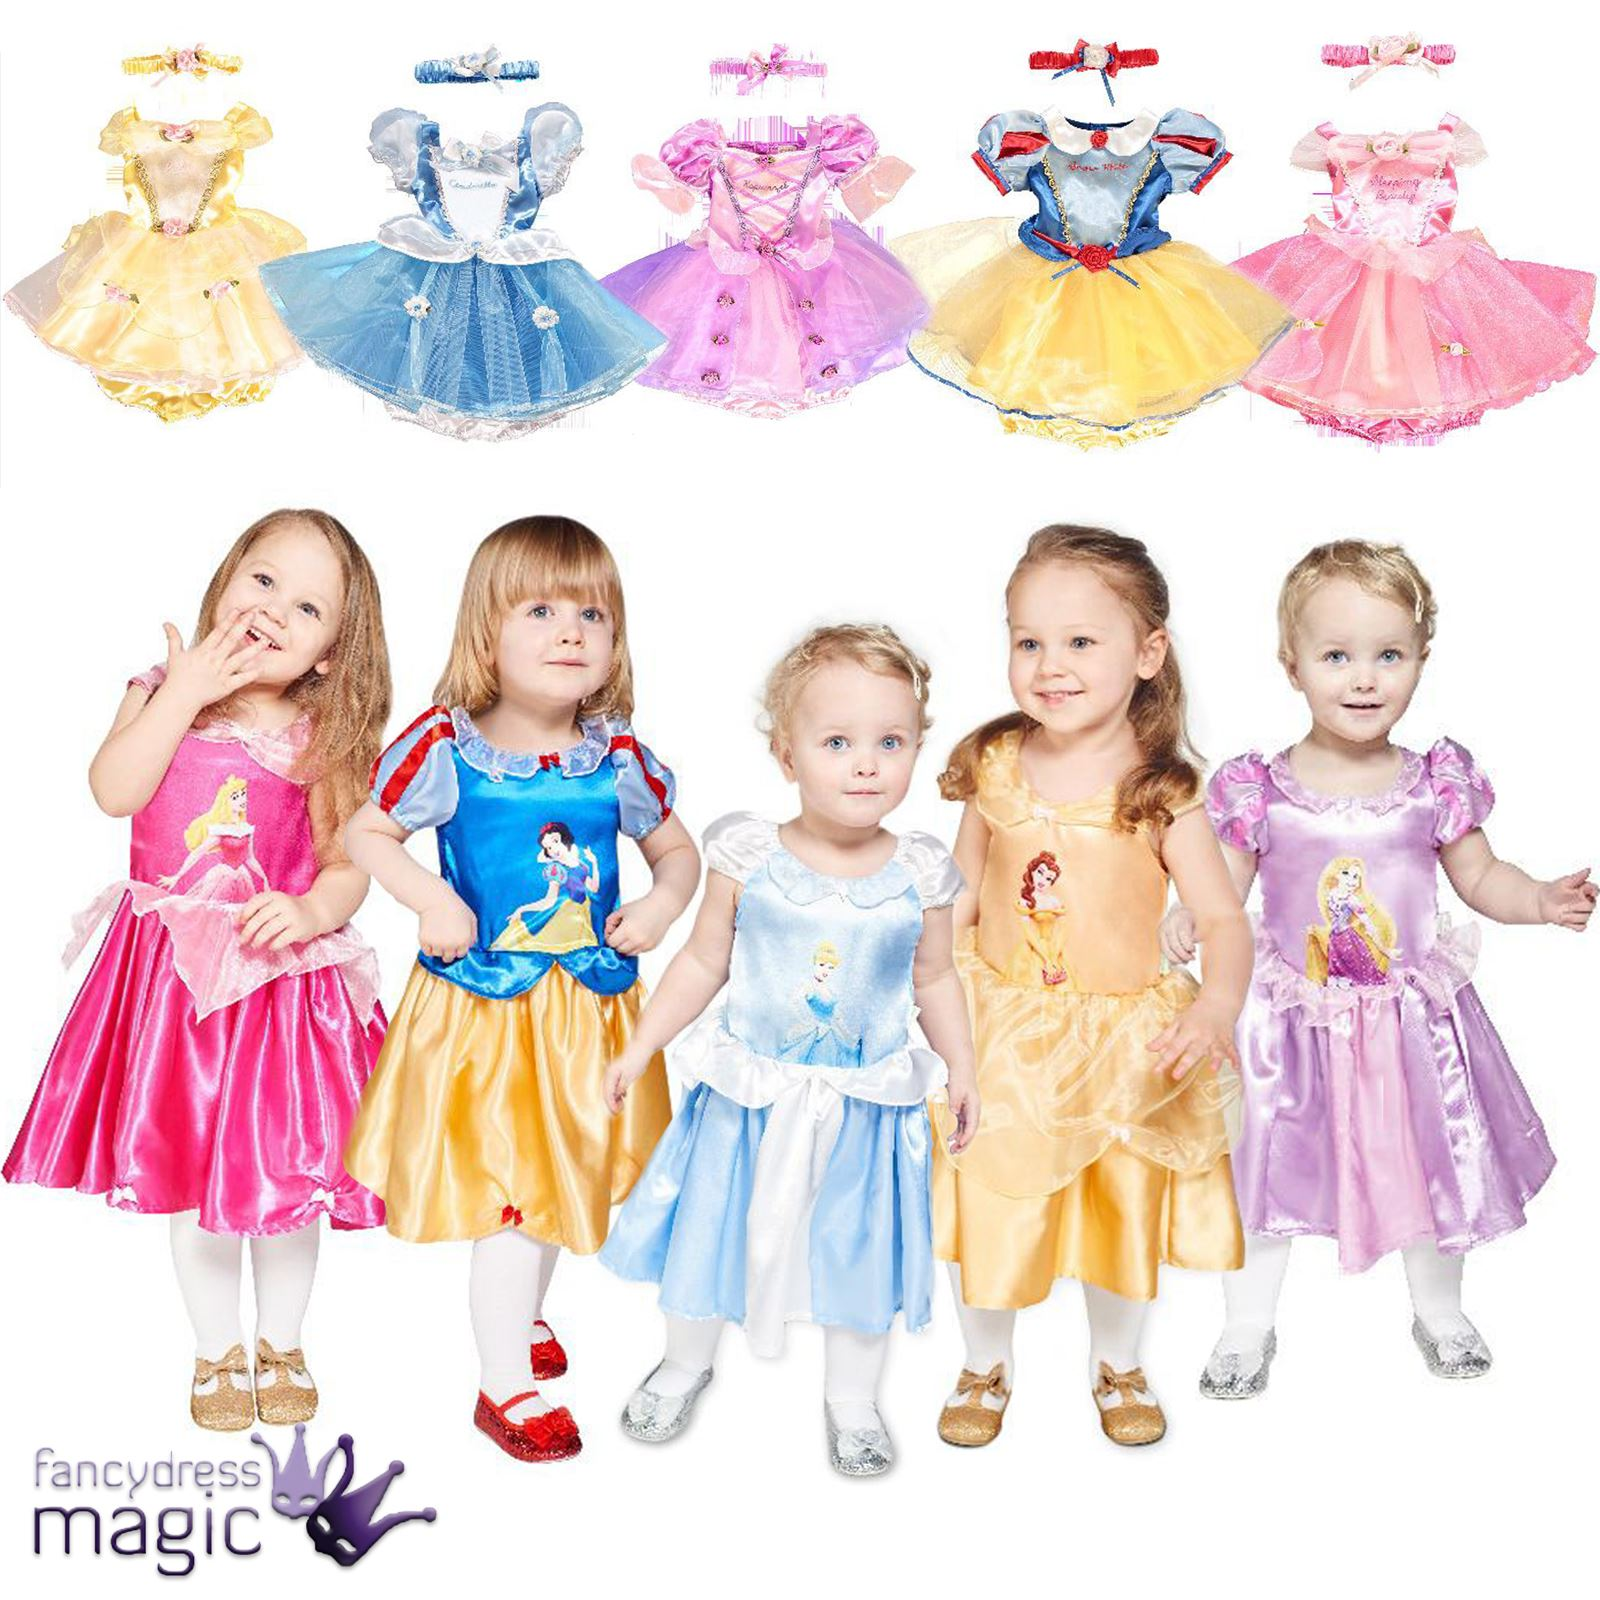 Girl Baby Toddler Disney Princess Fairy Tale Dress Up Fancy Dress